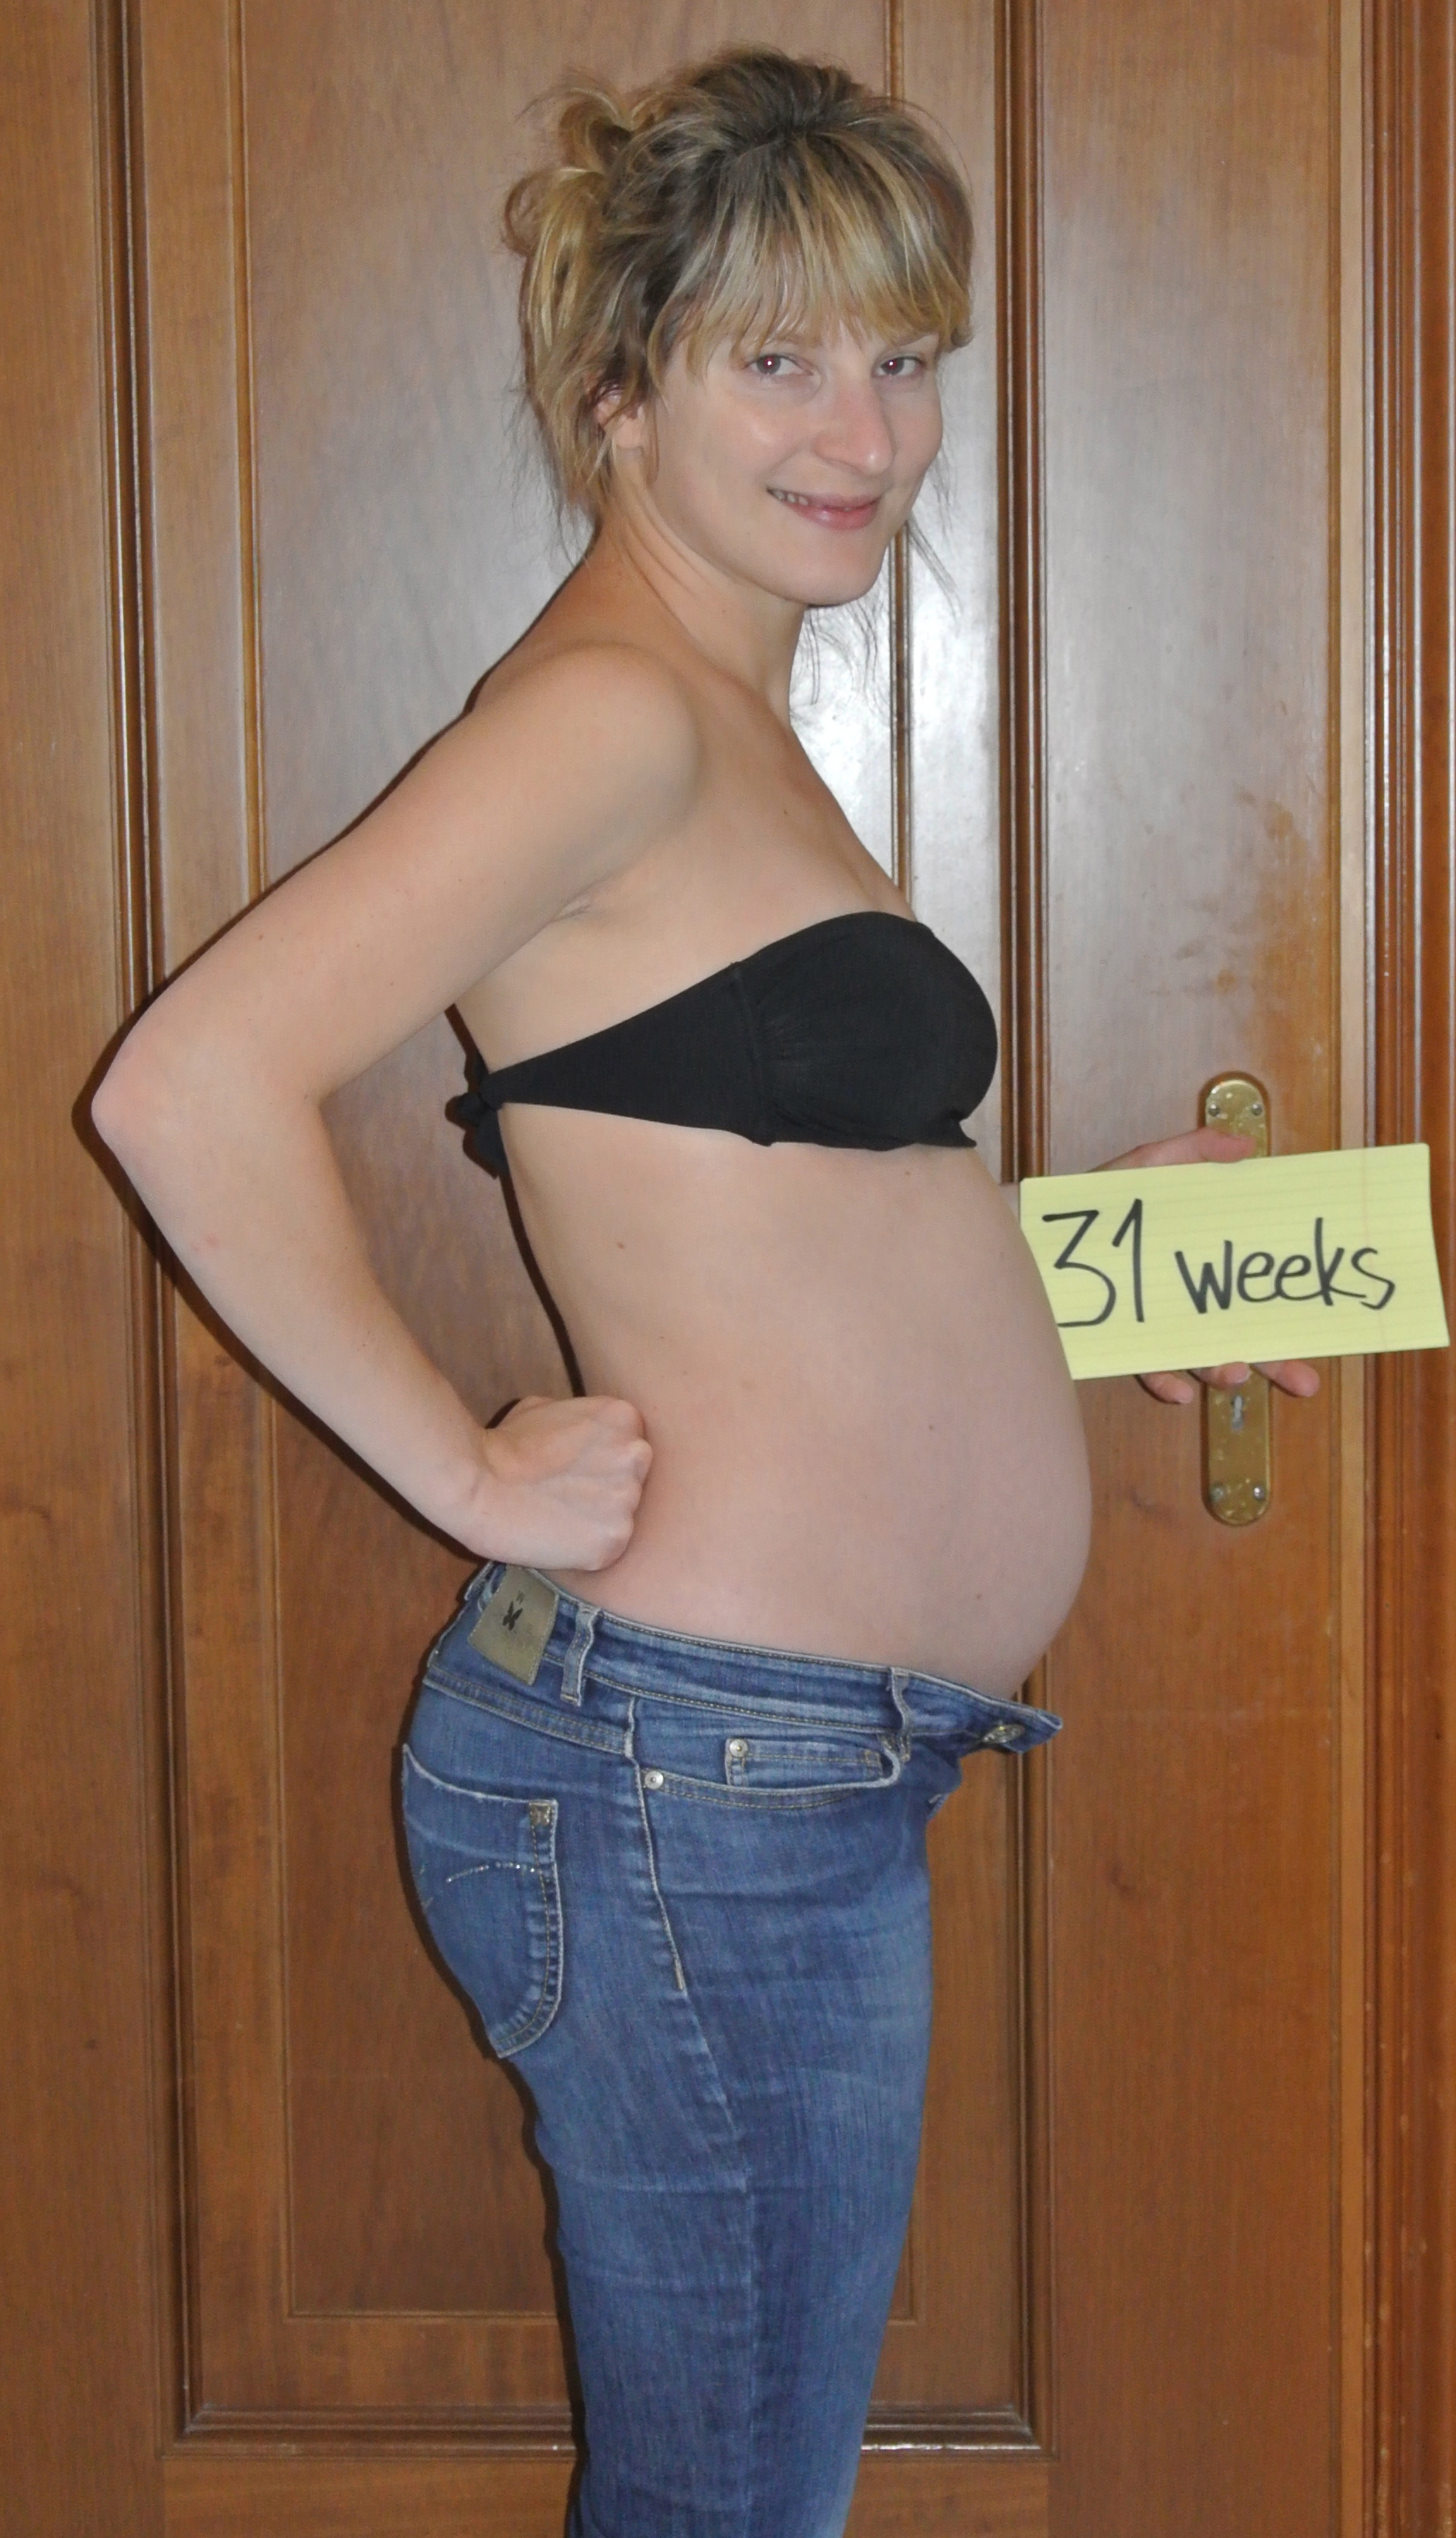 31 weeks pregnant belly